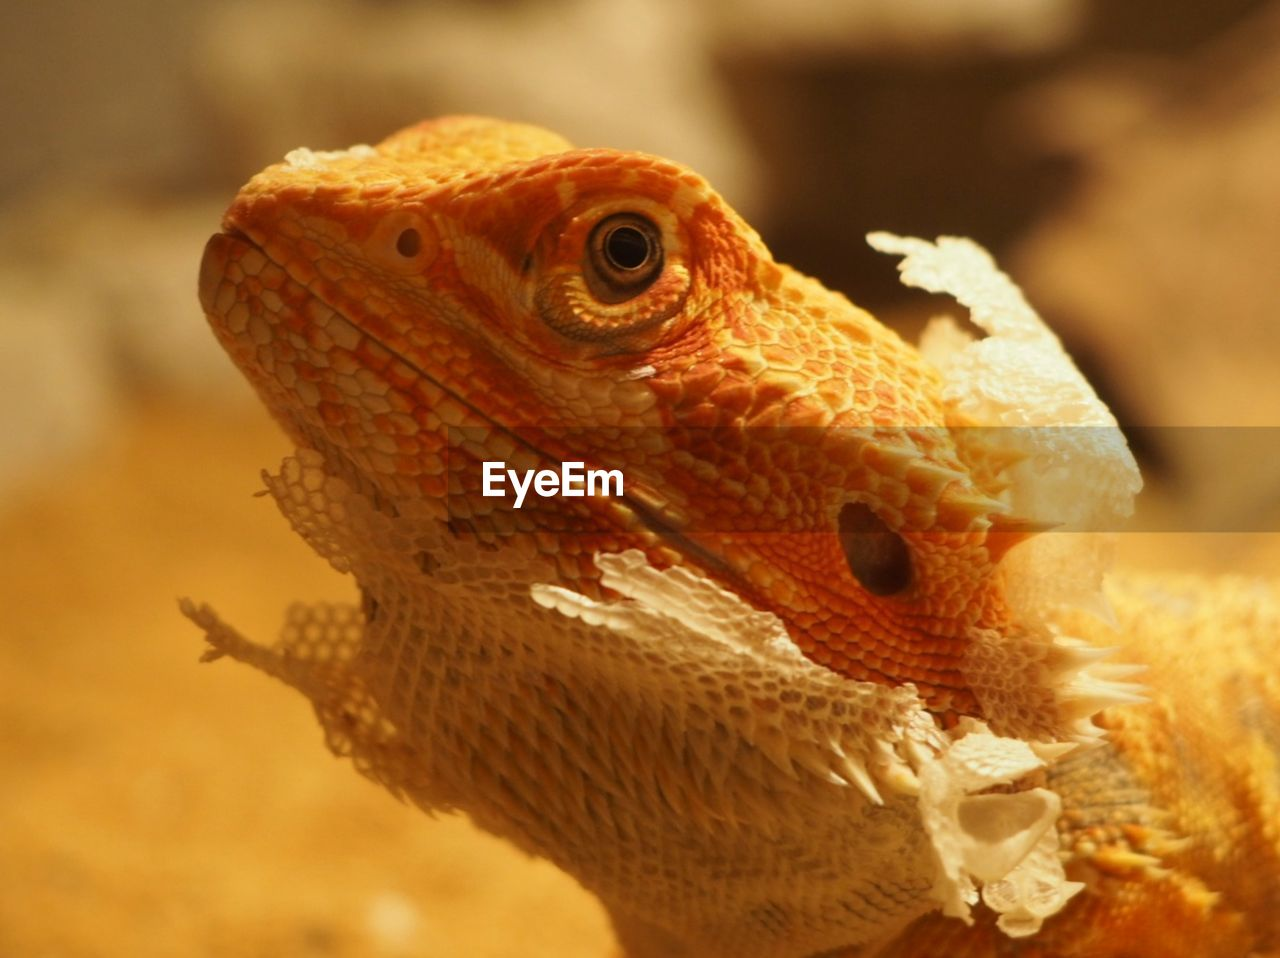 animal themes, one animal, close-up, animal, reptile, lizard, animal wildlife, vertebrate, animals in the wild, focus on foreground, bearded dragon, animal body part, no people, animal head, nature, day, looking, outdoors, looking away, side view, animal scale, animal eye